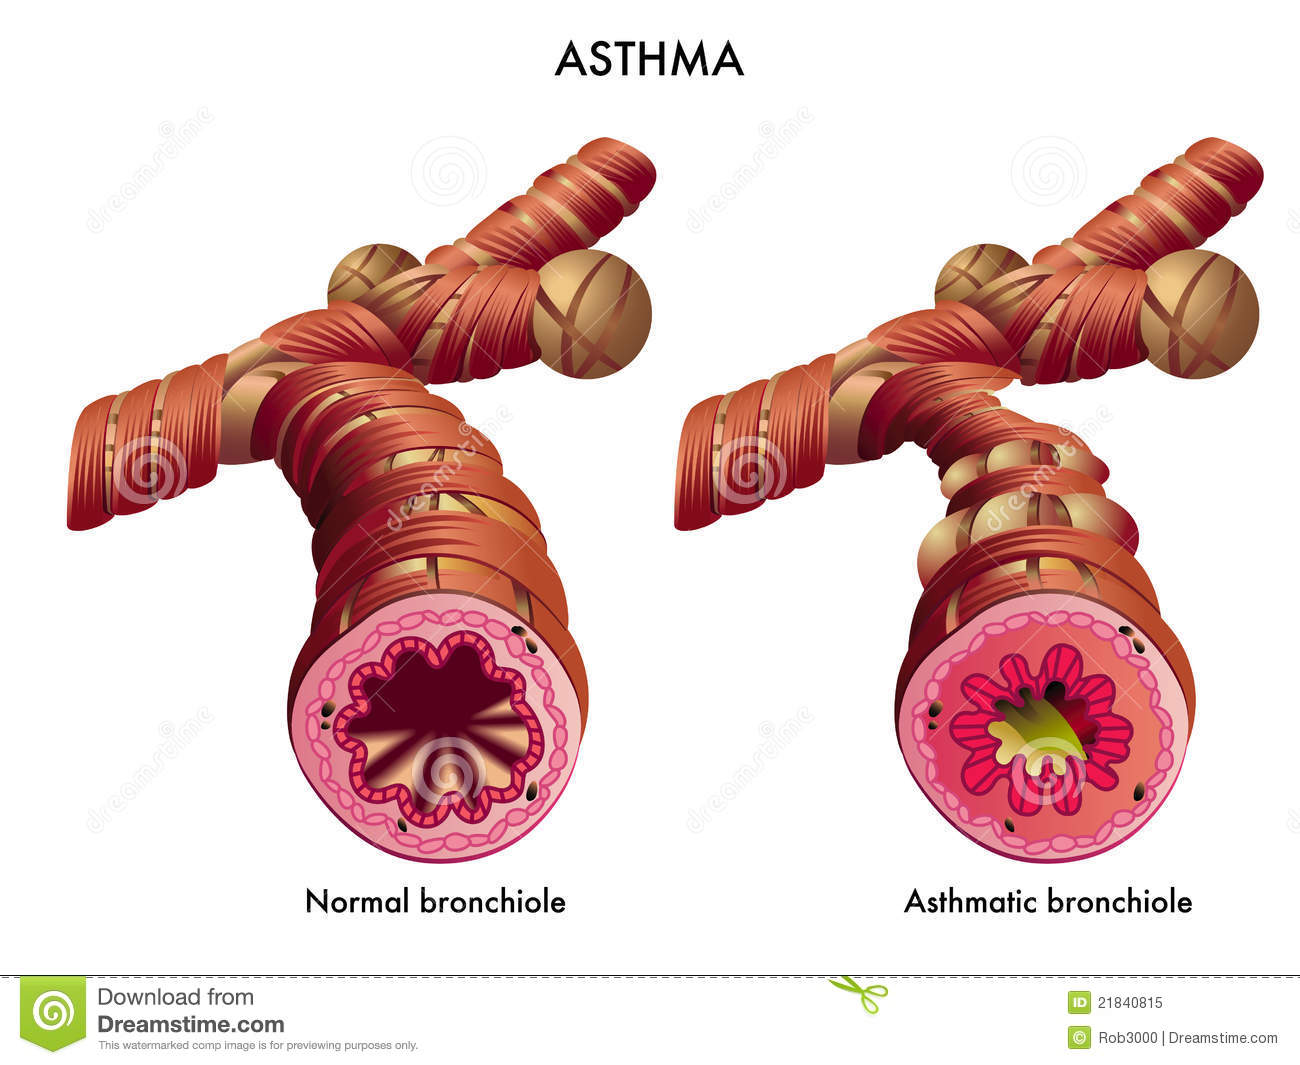 an introduction to asthma a disorder that interferes with the lungs and the airway to the lungs